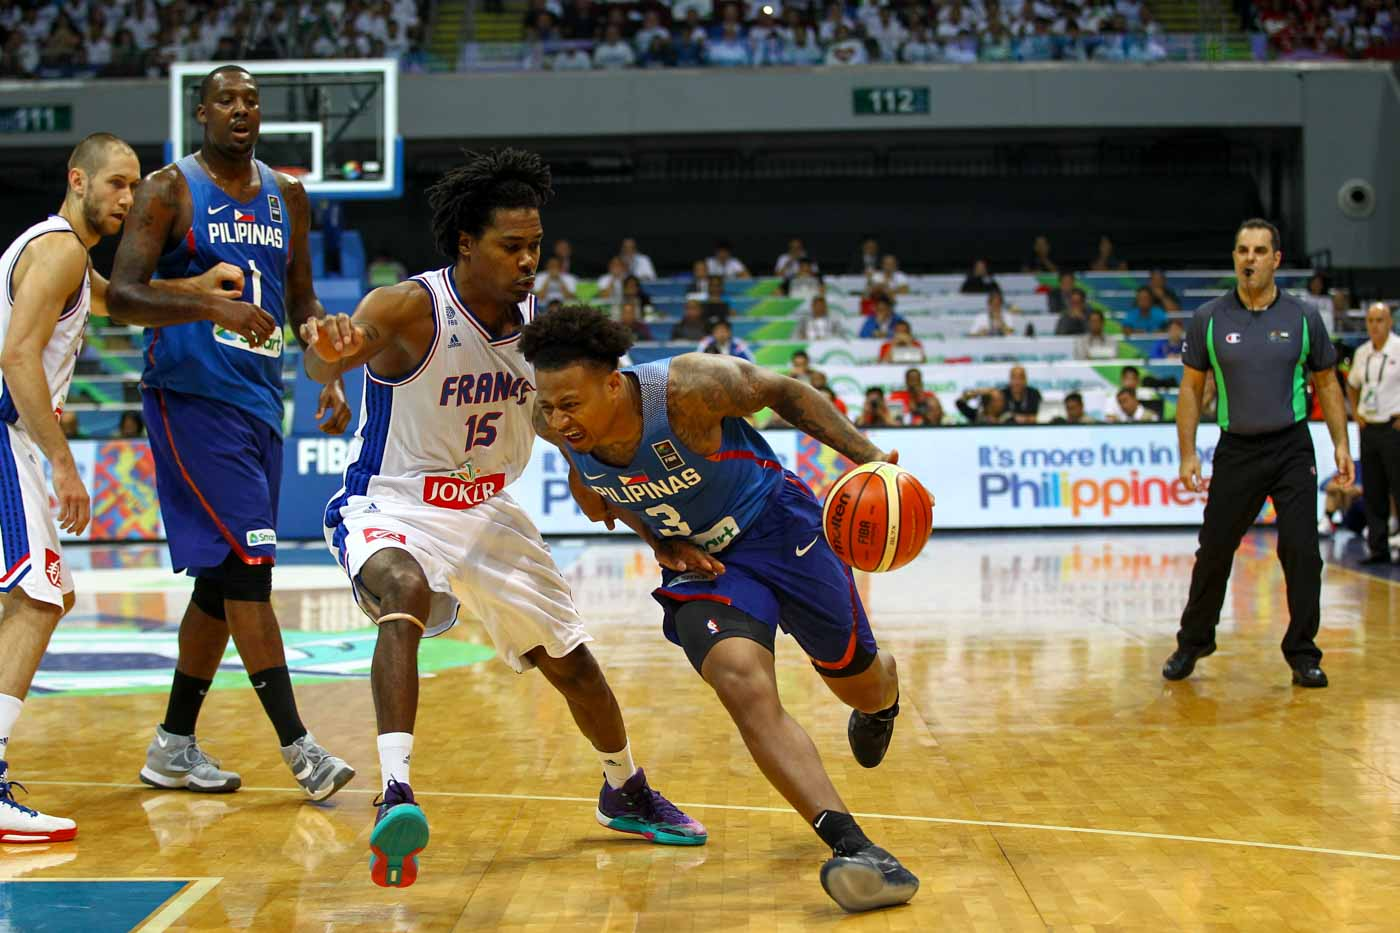 Bobby Ray Parks Jr drives for an and-1 play against France. Photo by Josh Albelda/Rappler